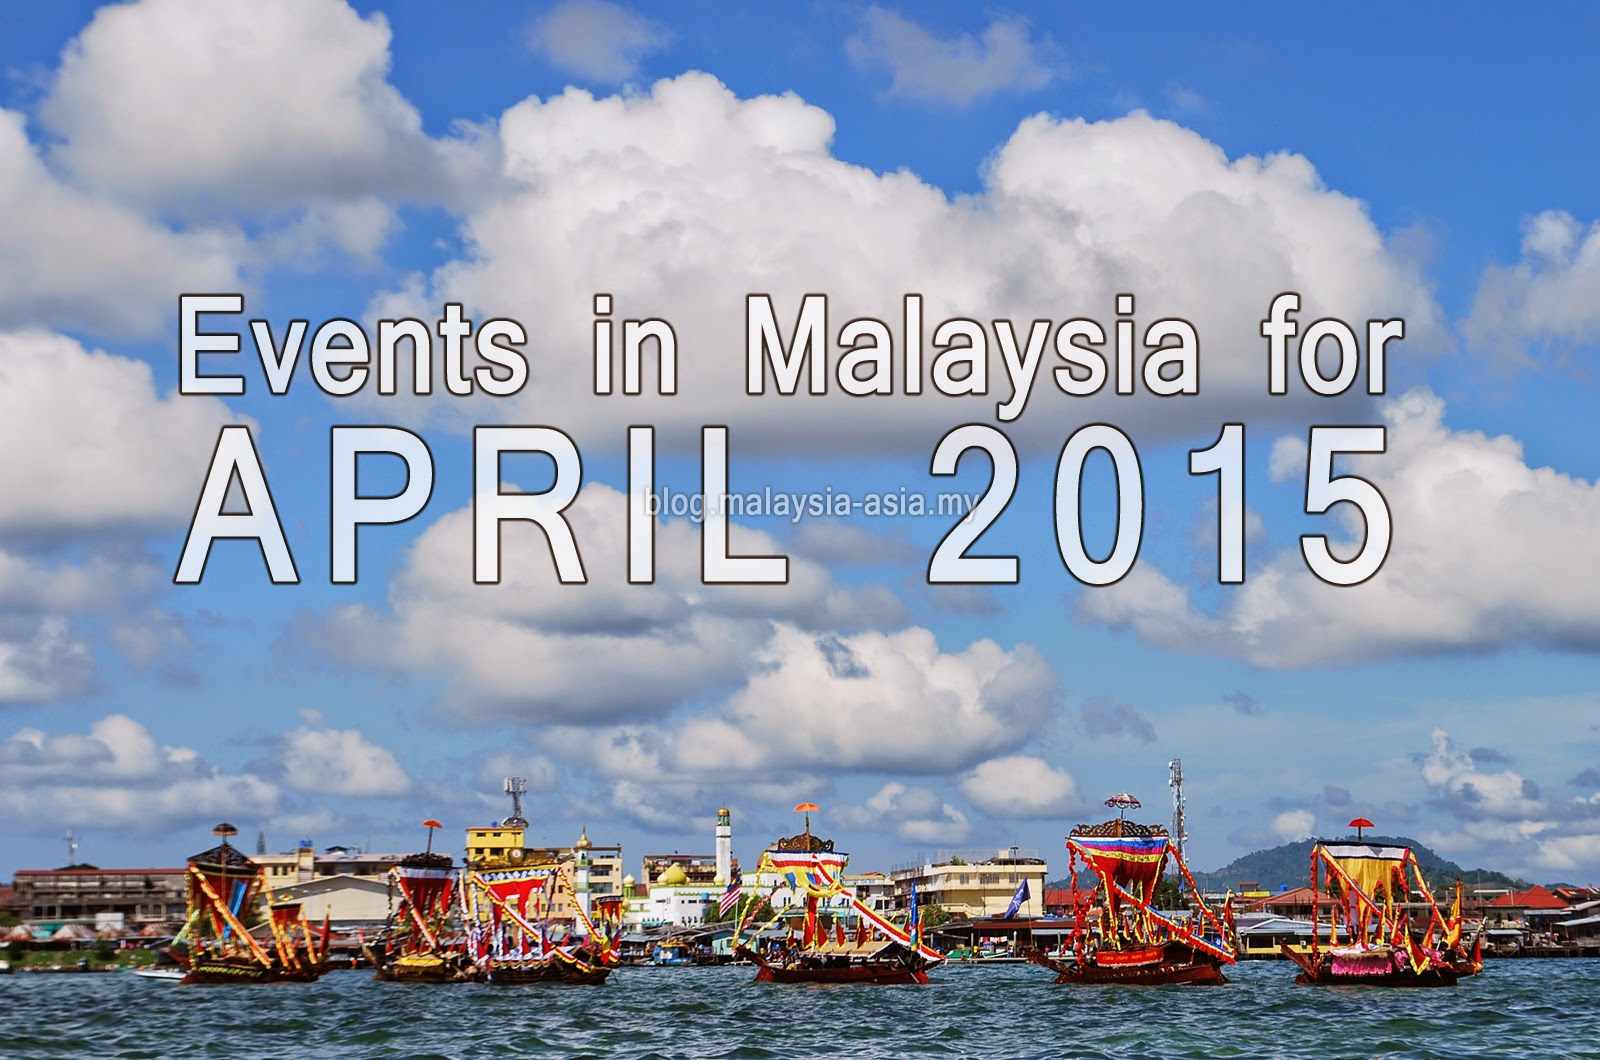 Events in Malaysia April 2015